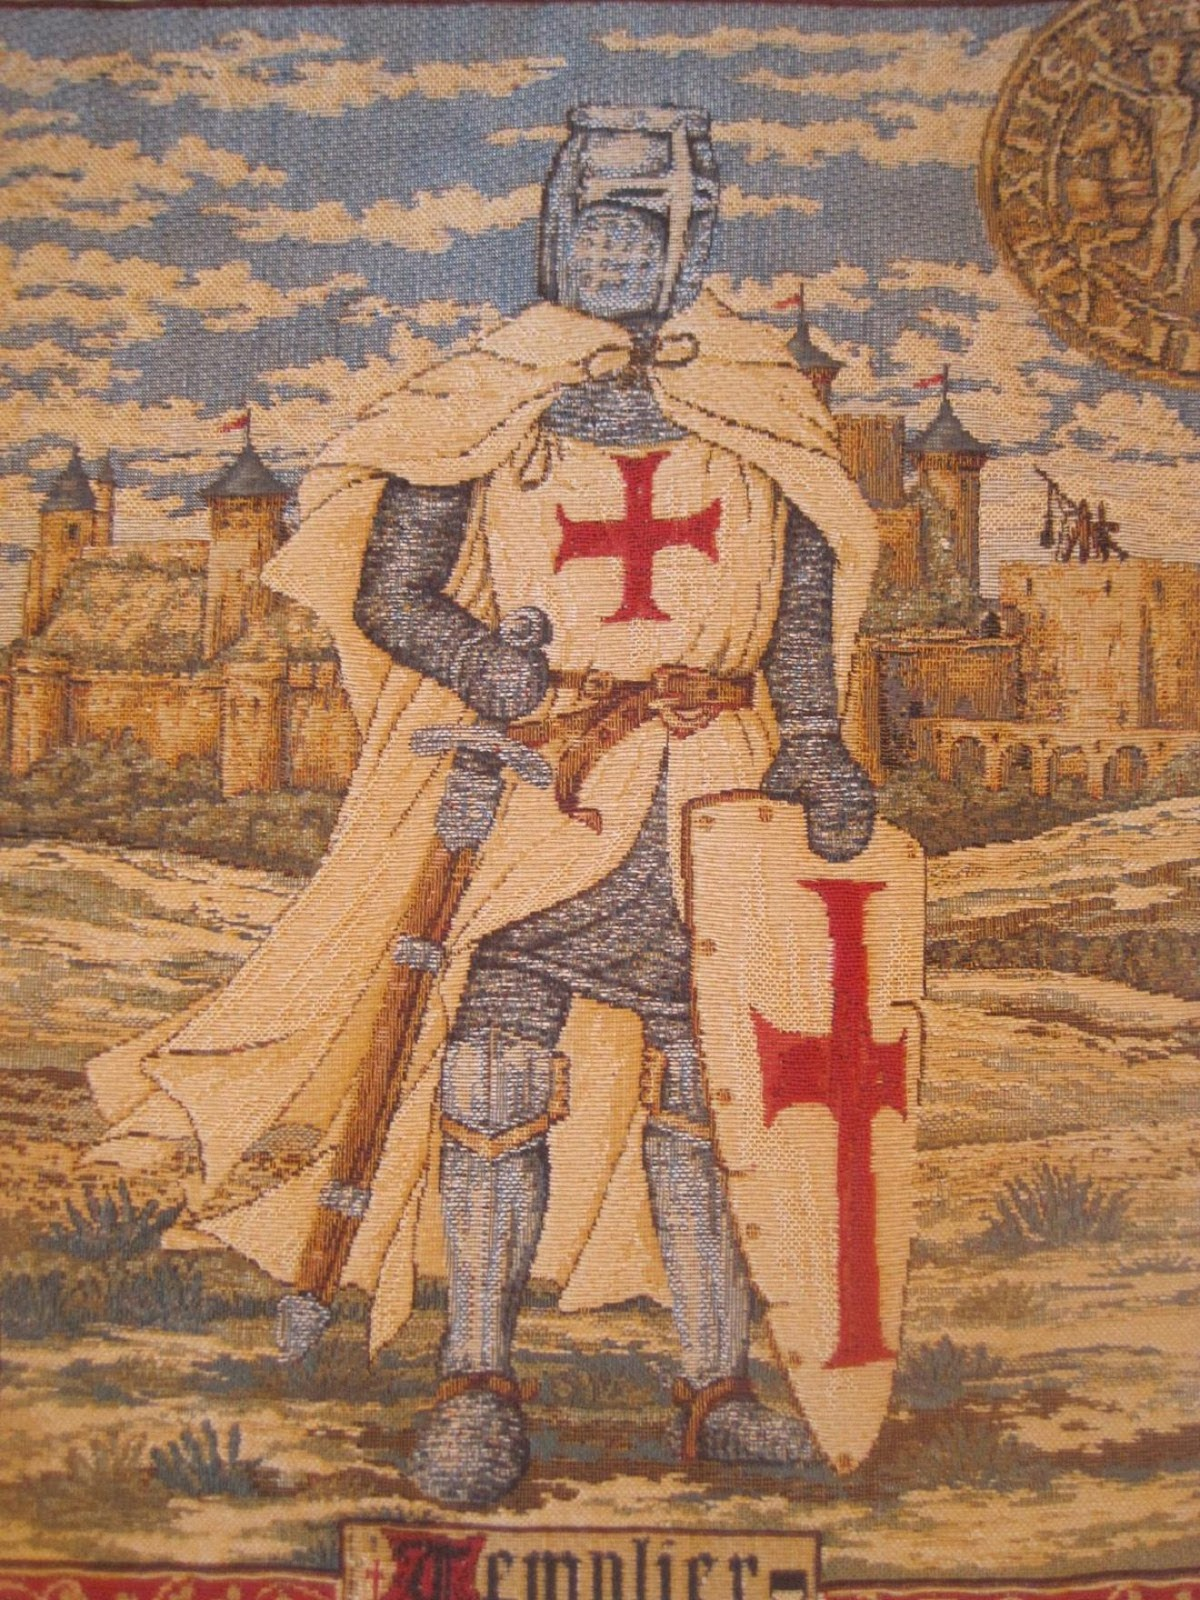 Who are the crusaders, why are they called that